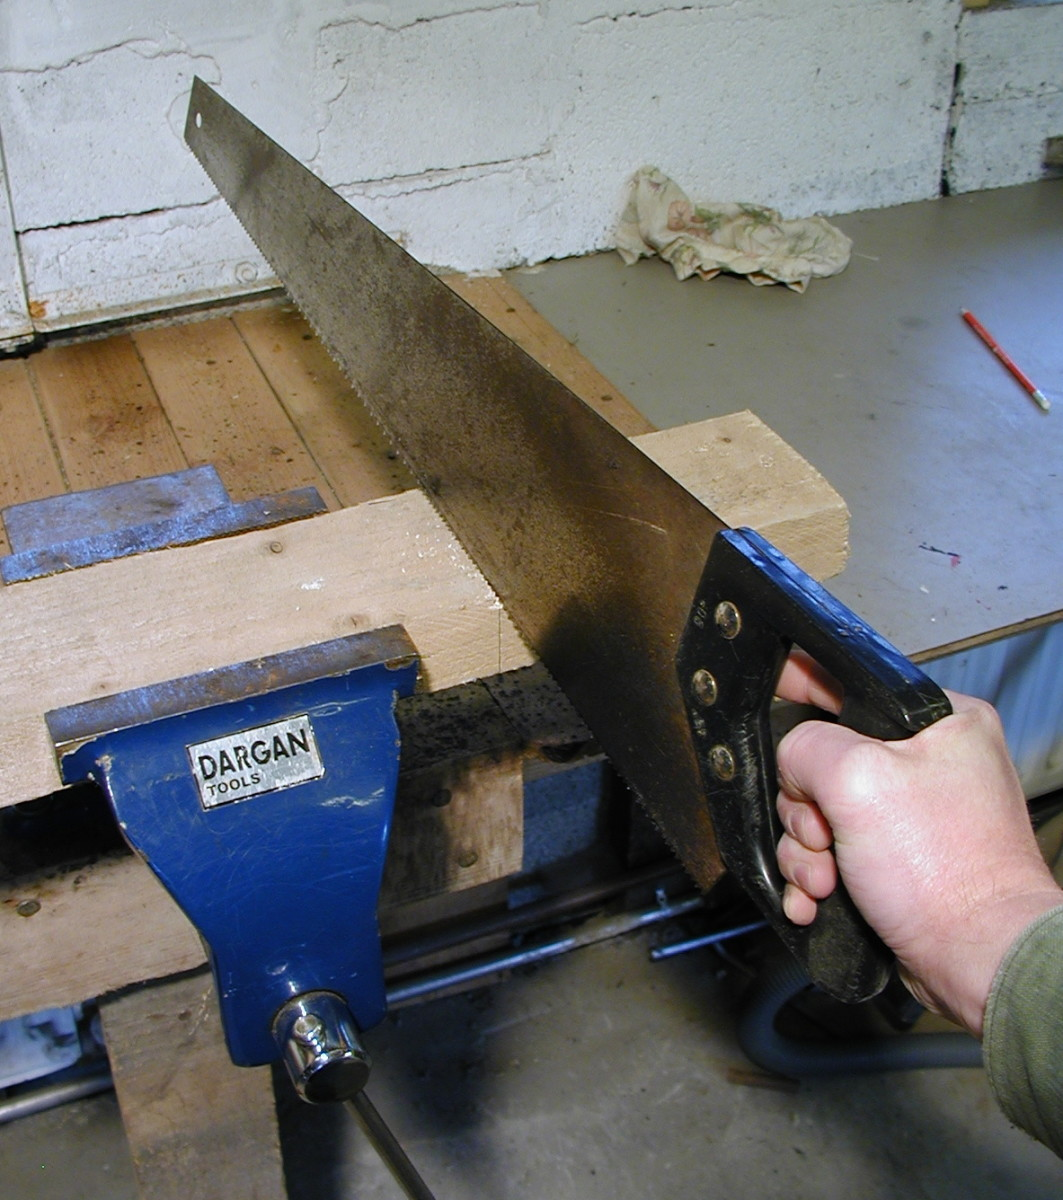 Hold the timber securely in a vice